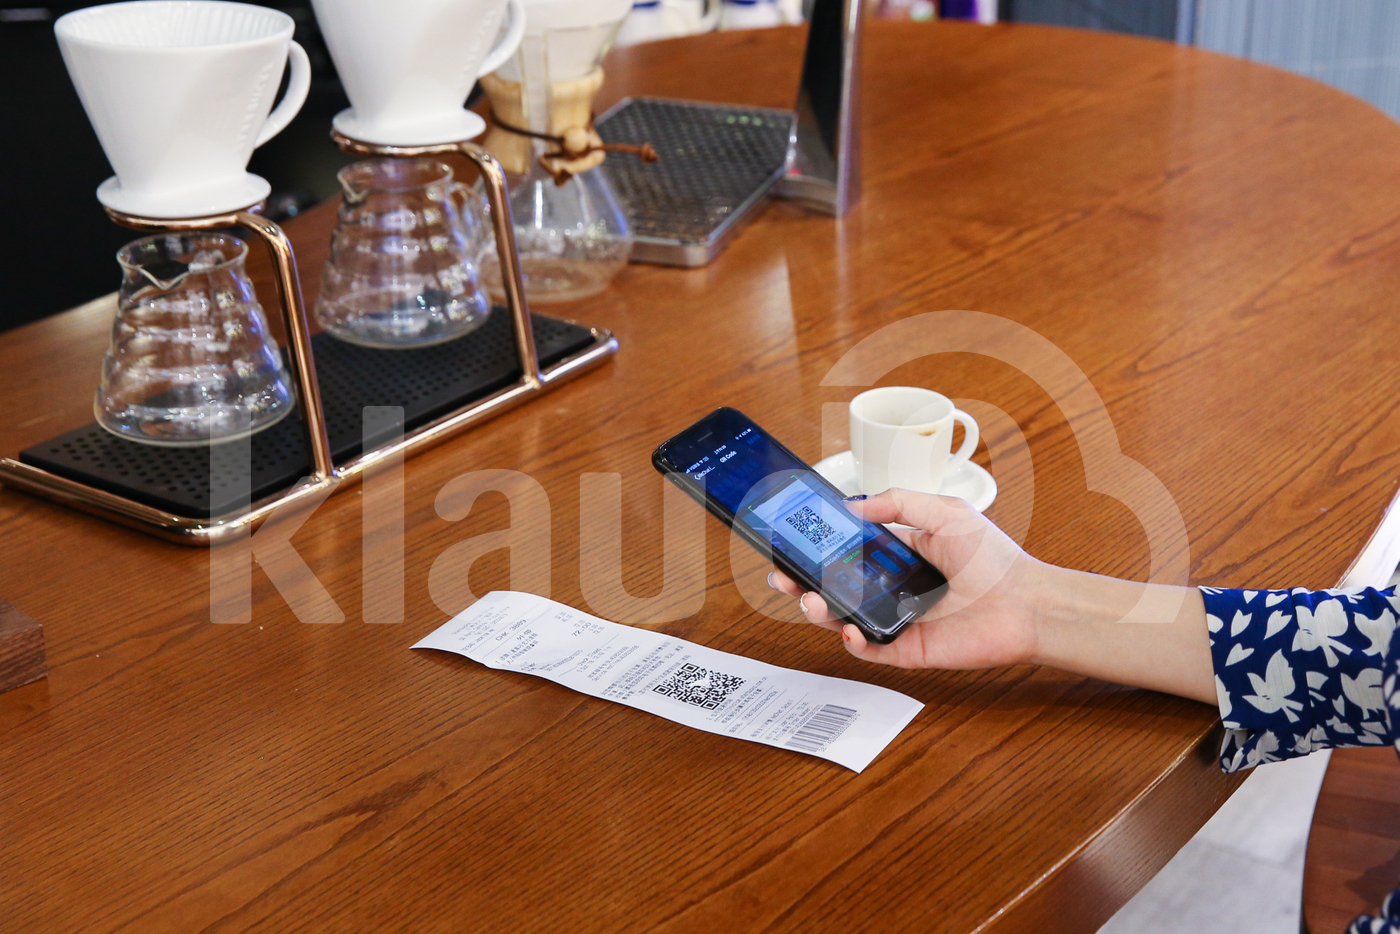 Woman making payment with mobile by scanning QR code